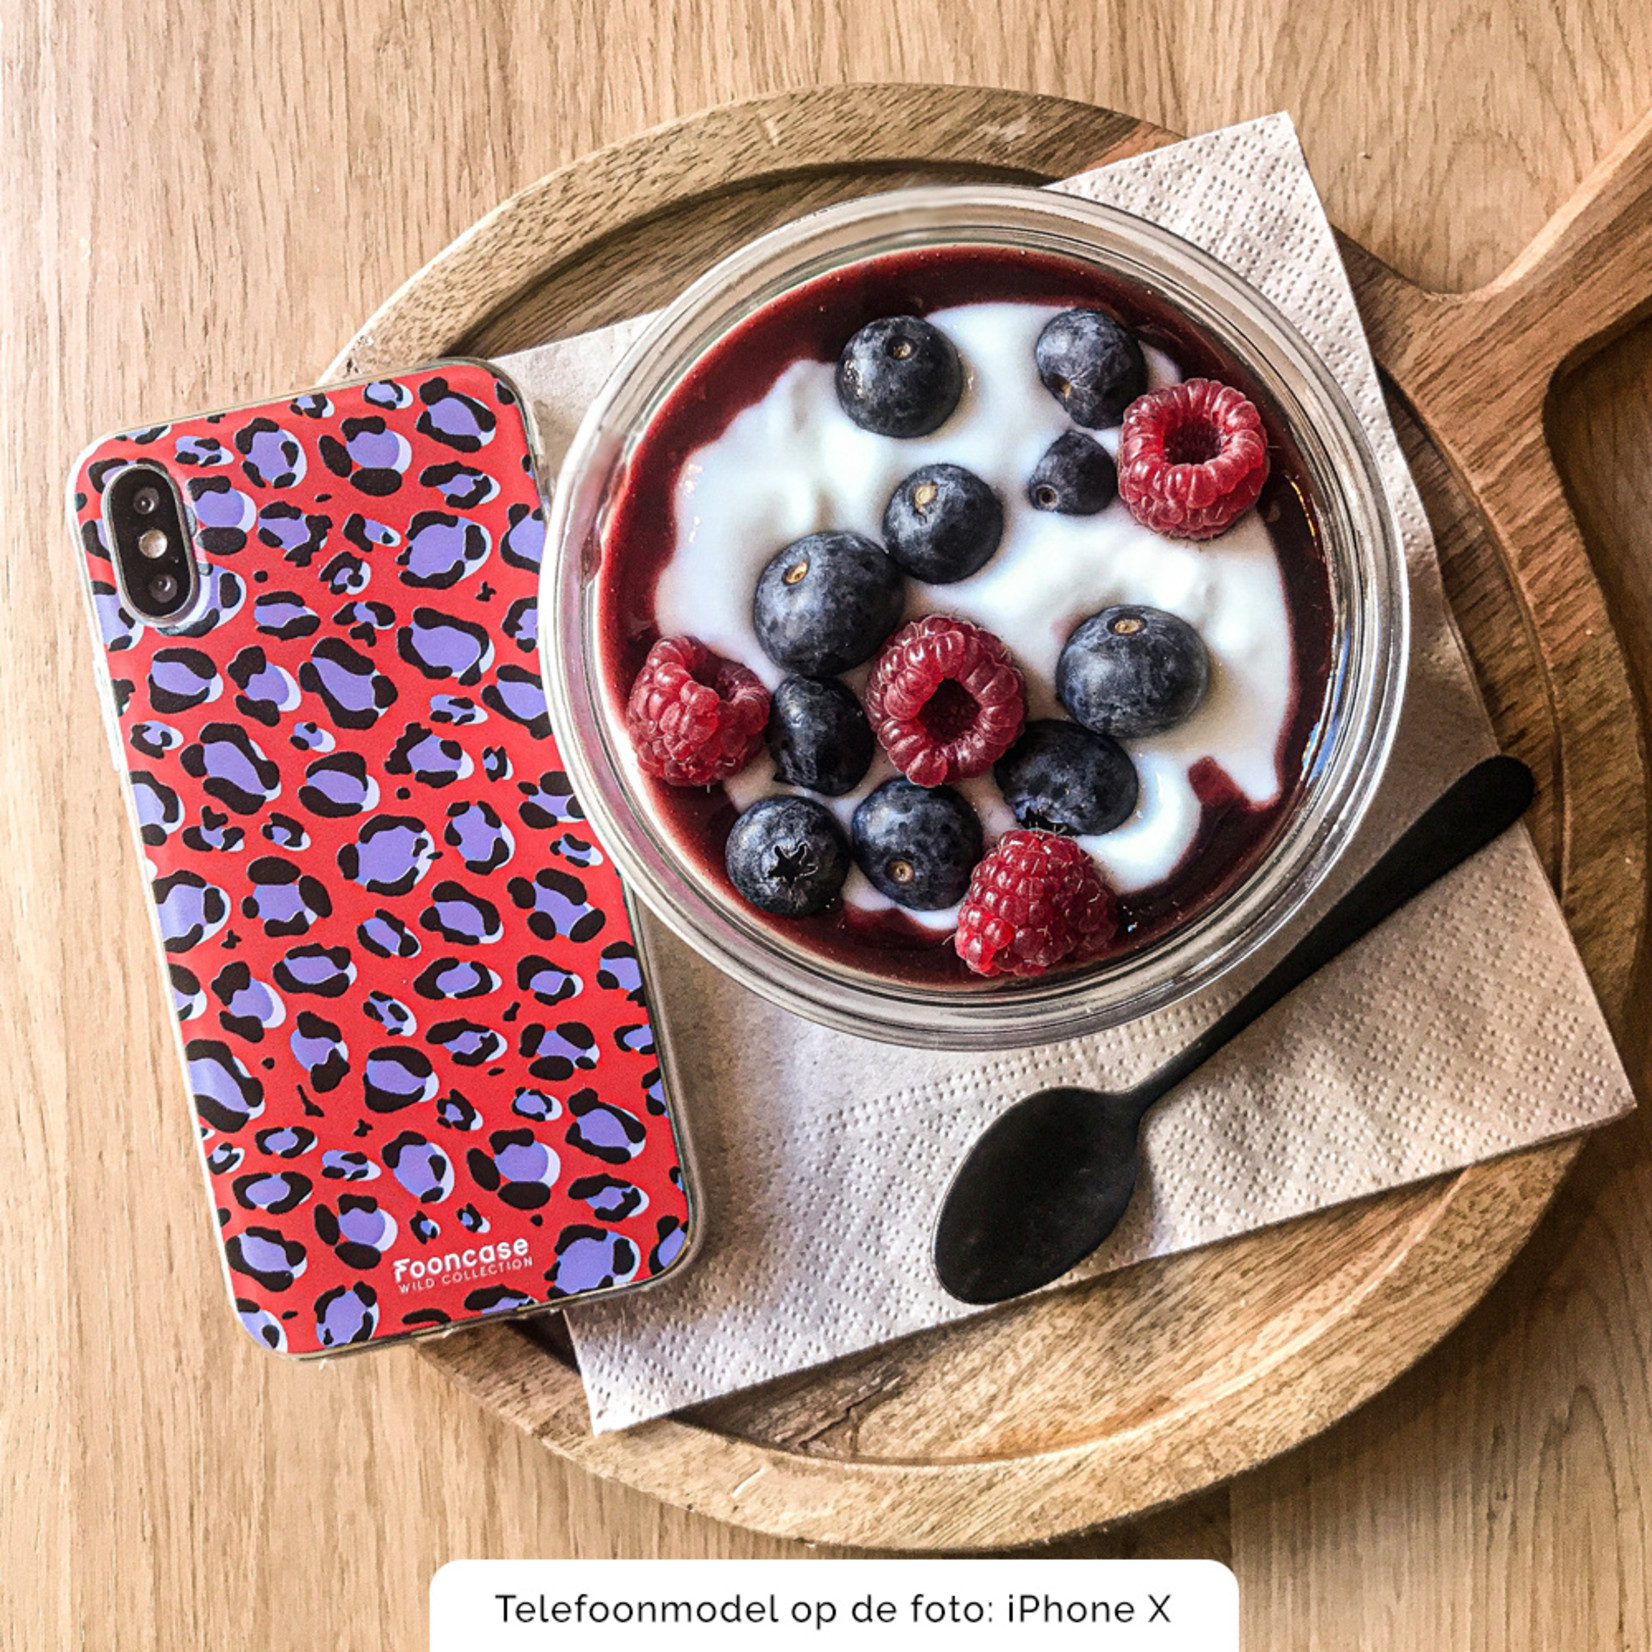 FOONCASE Samsung Galaxy S10 hoesje TPU Soft Case - Back Cover - WILD COLLECTION / Luipaard / Leopard print / Rood